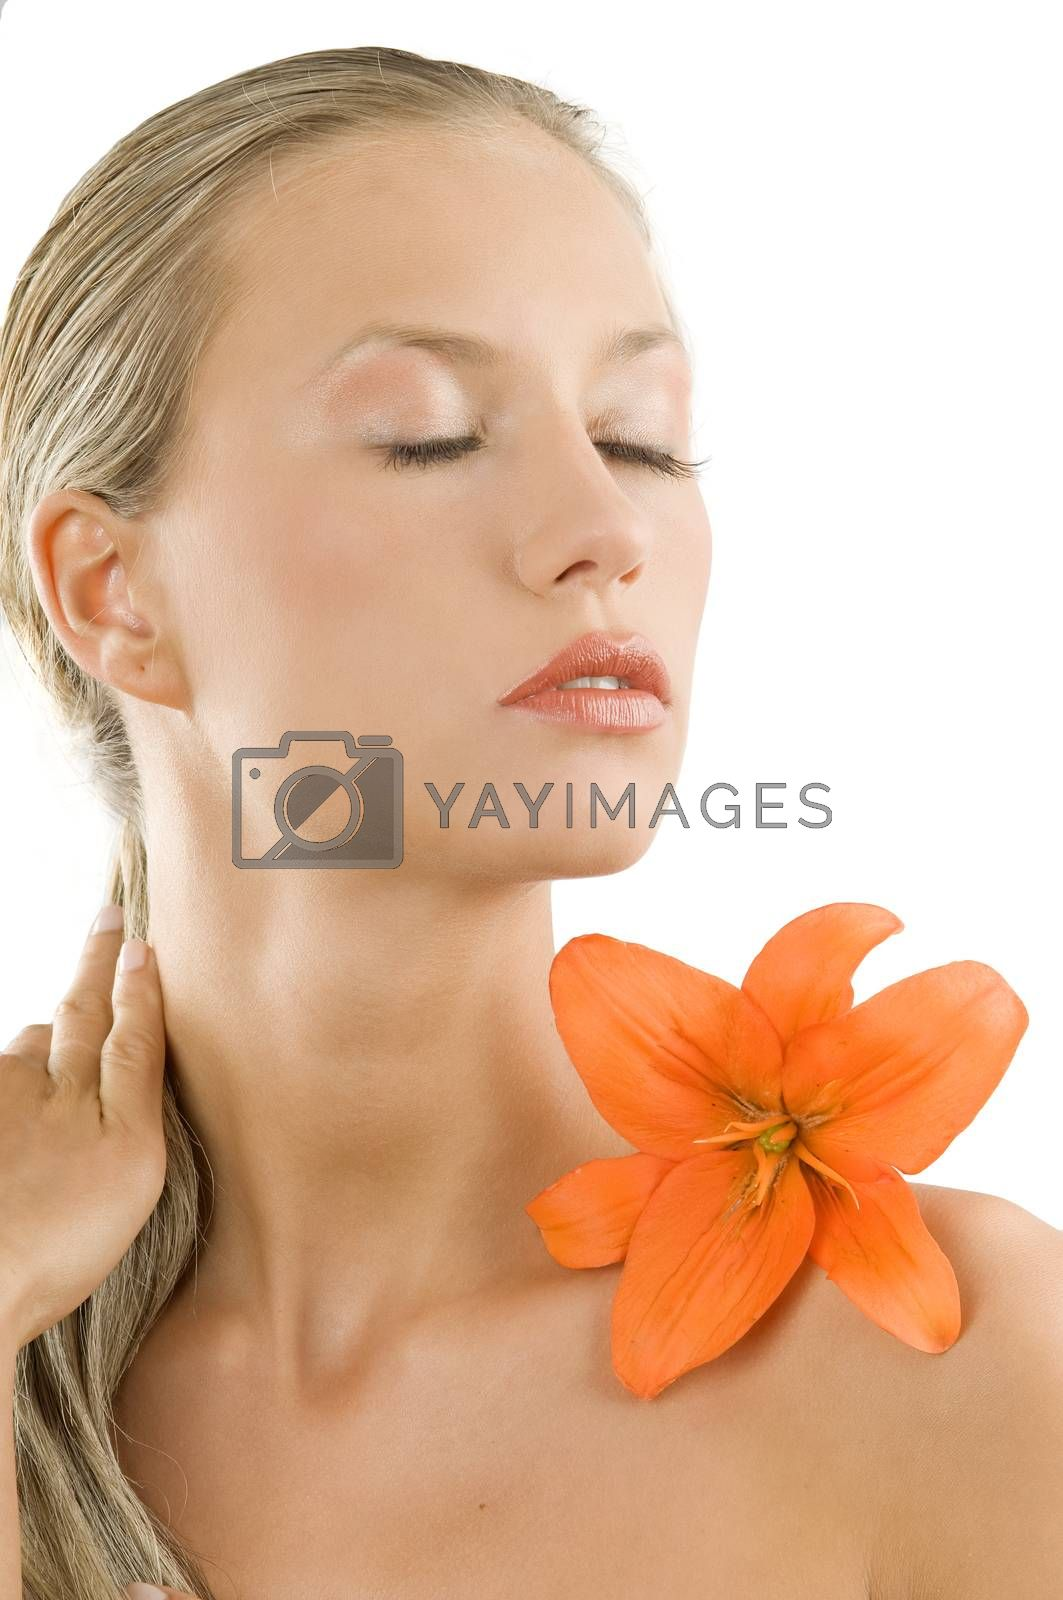 Royalty free image of closed eyes by fotoCD